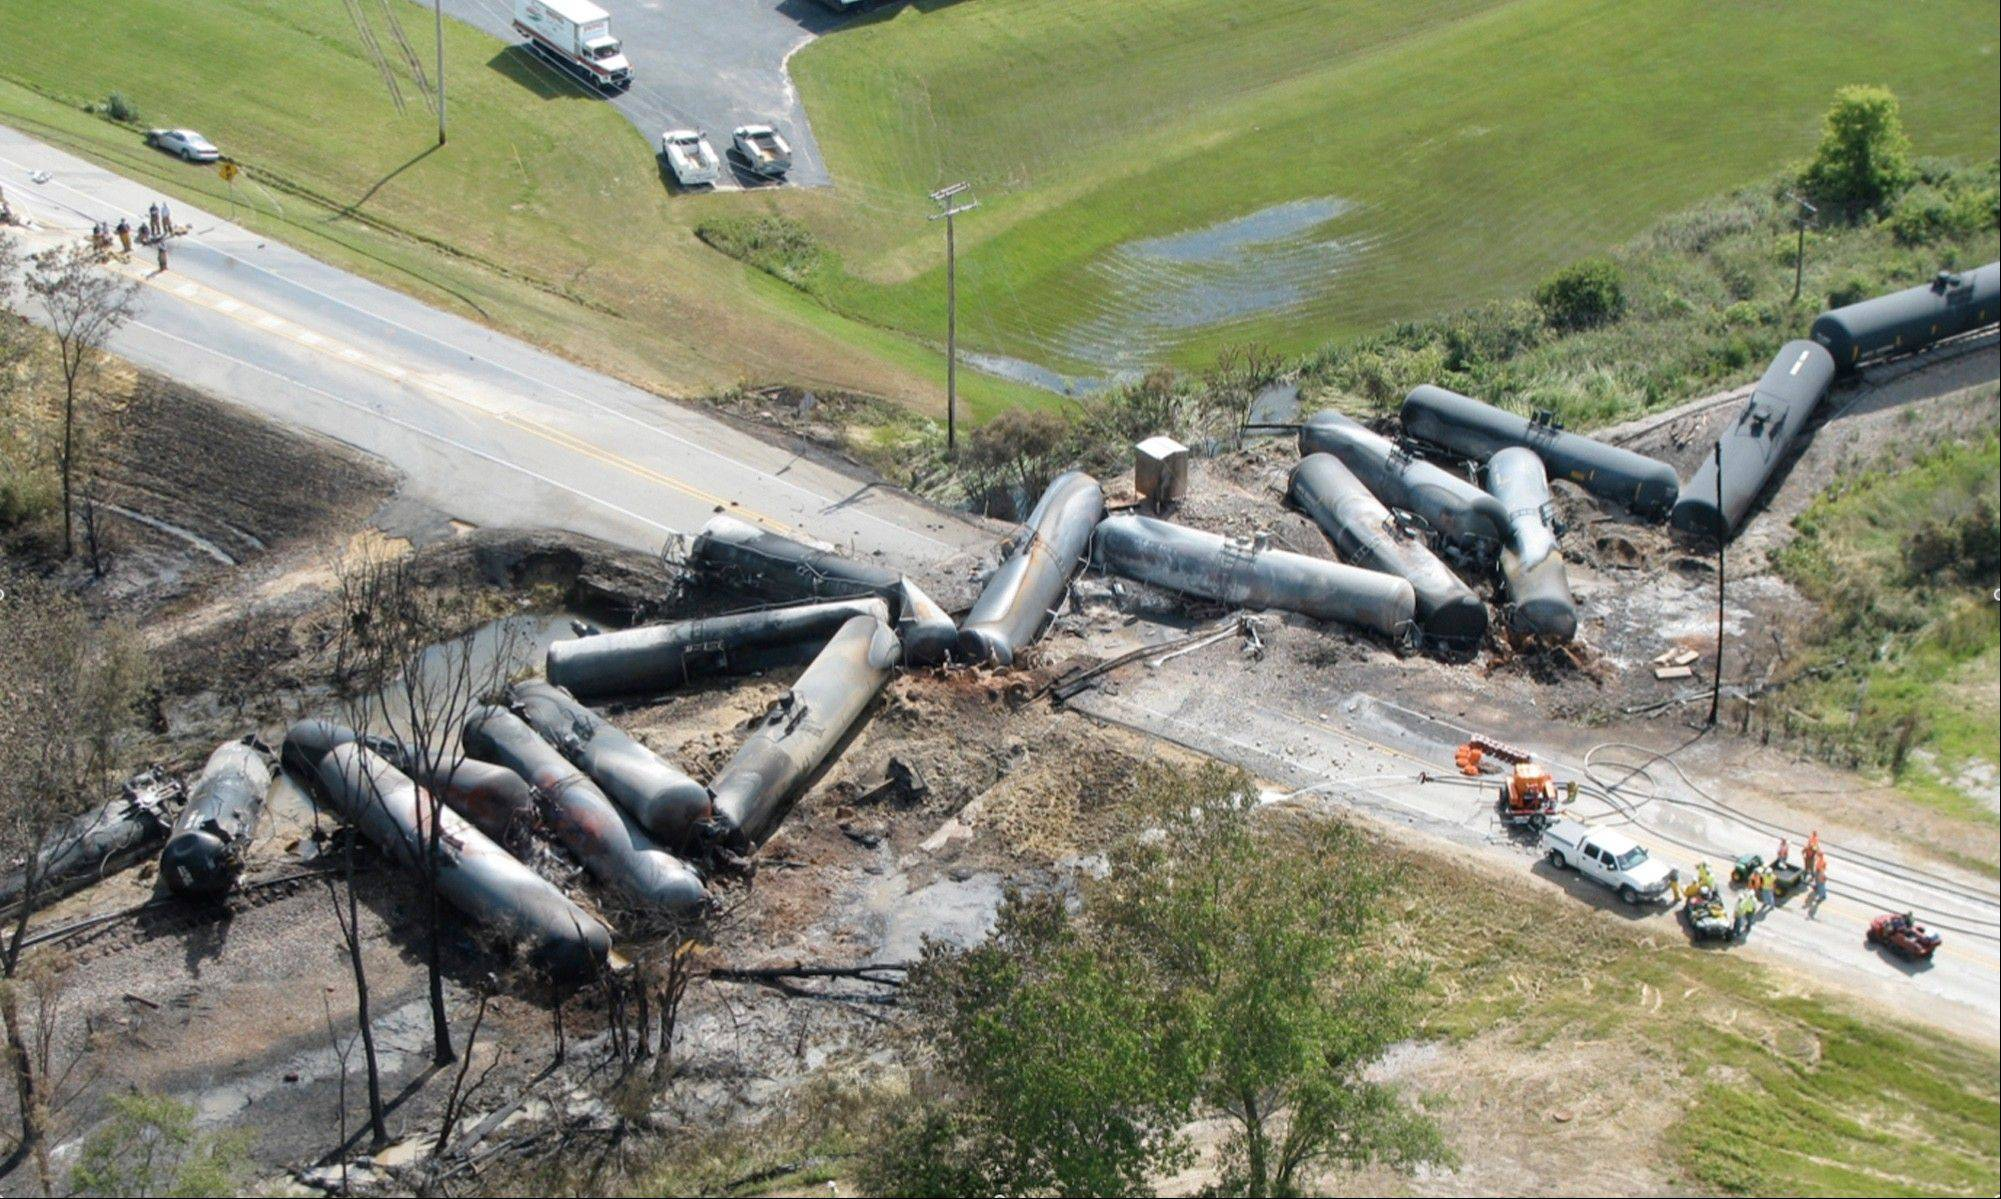 A June 20, 2009, derailment of a freight train carrying ethanol caused an explosion that killed a woman in Cherry Valley and forced the evacuation of 600 homes.